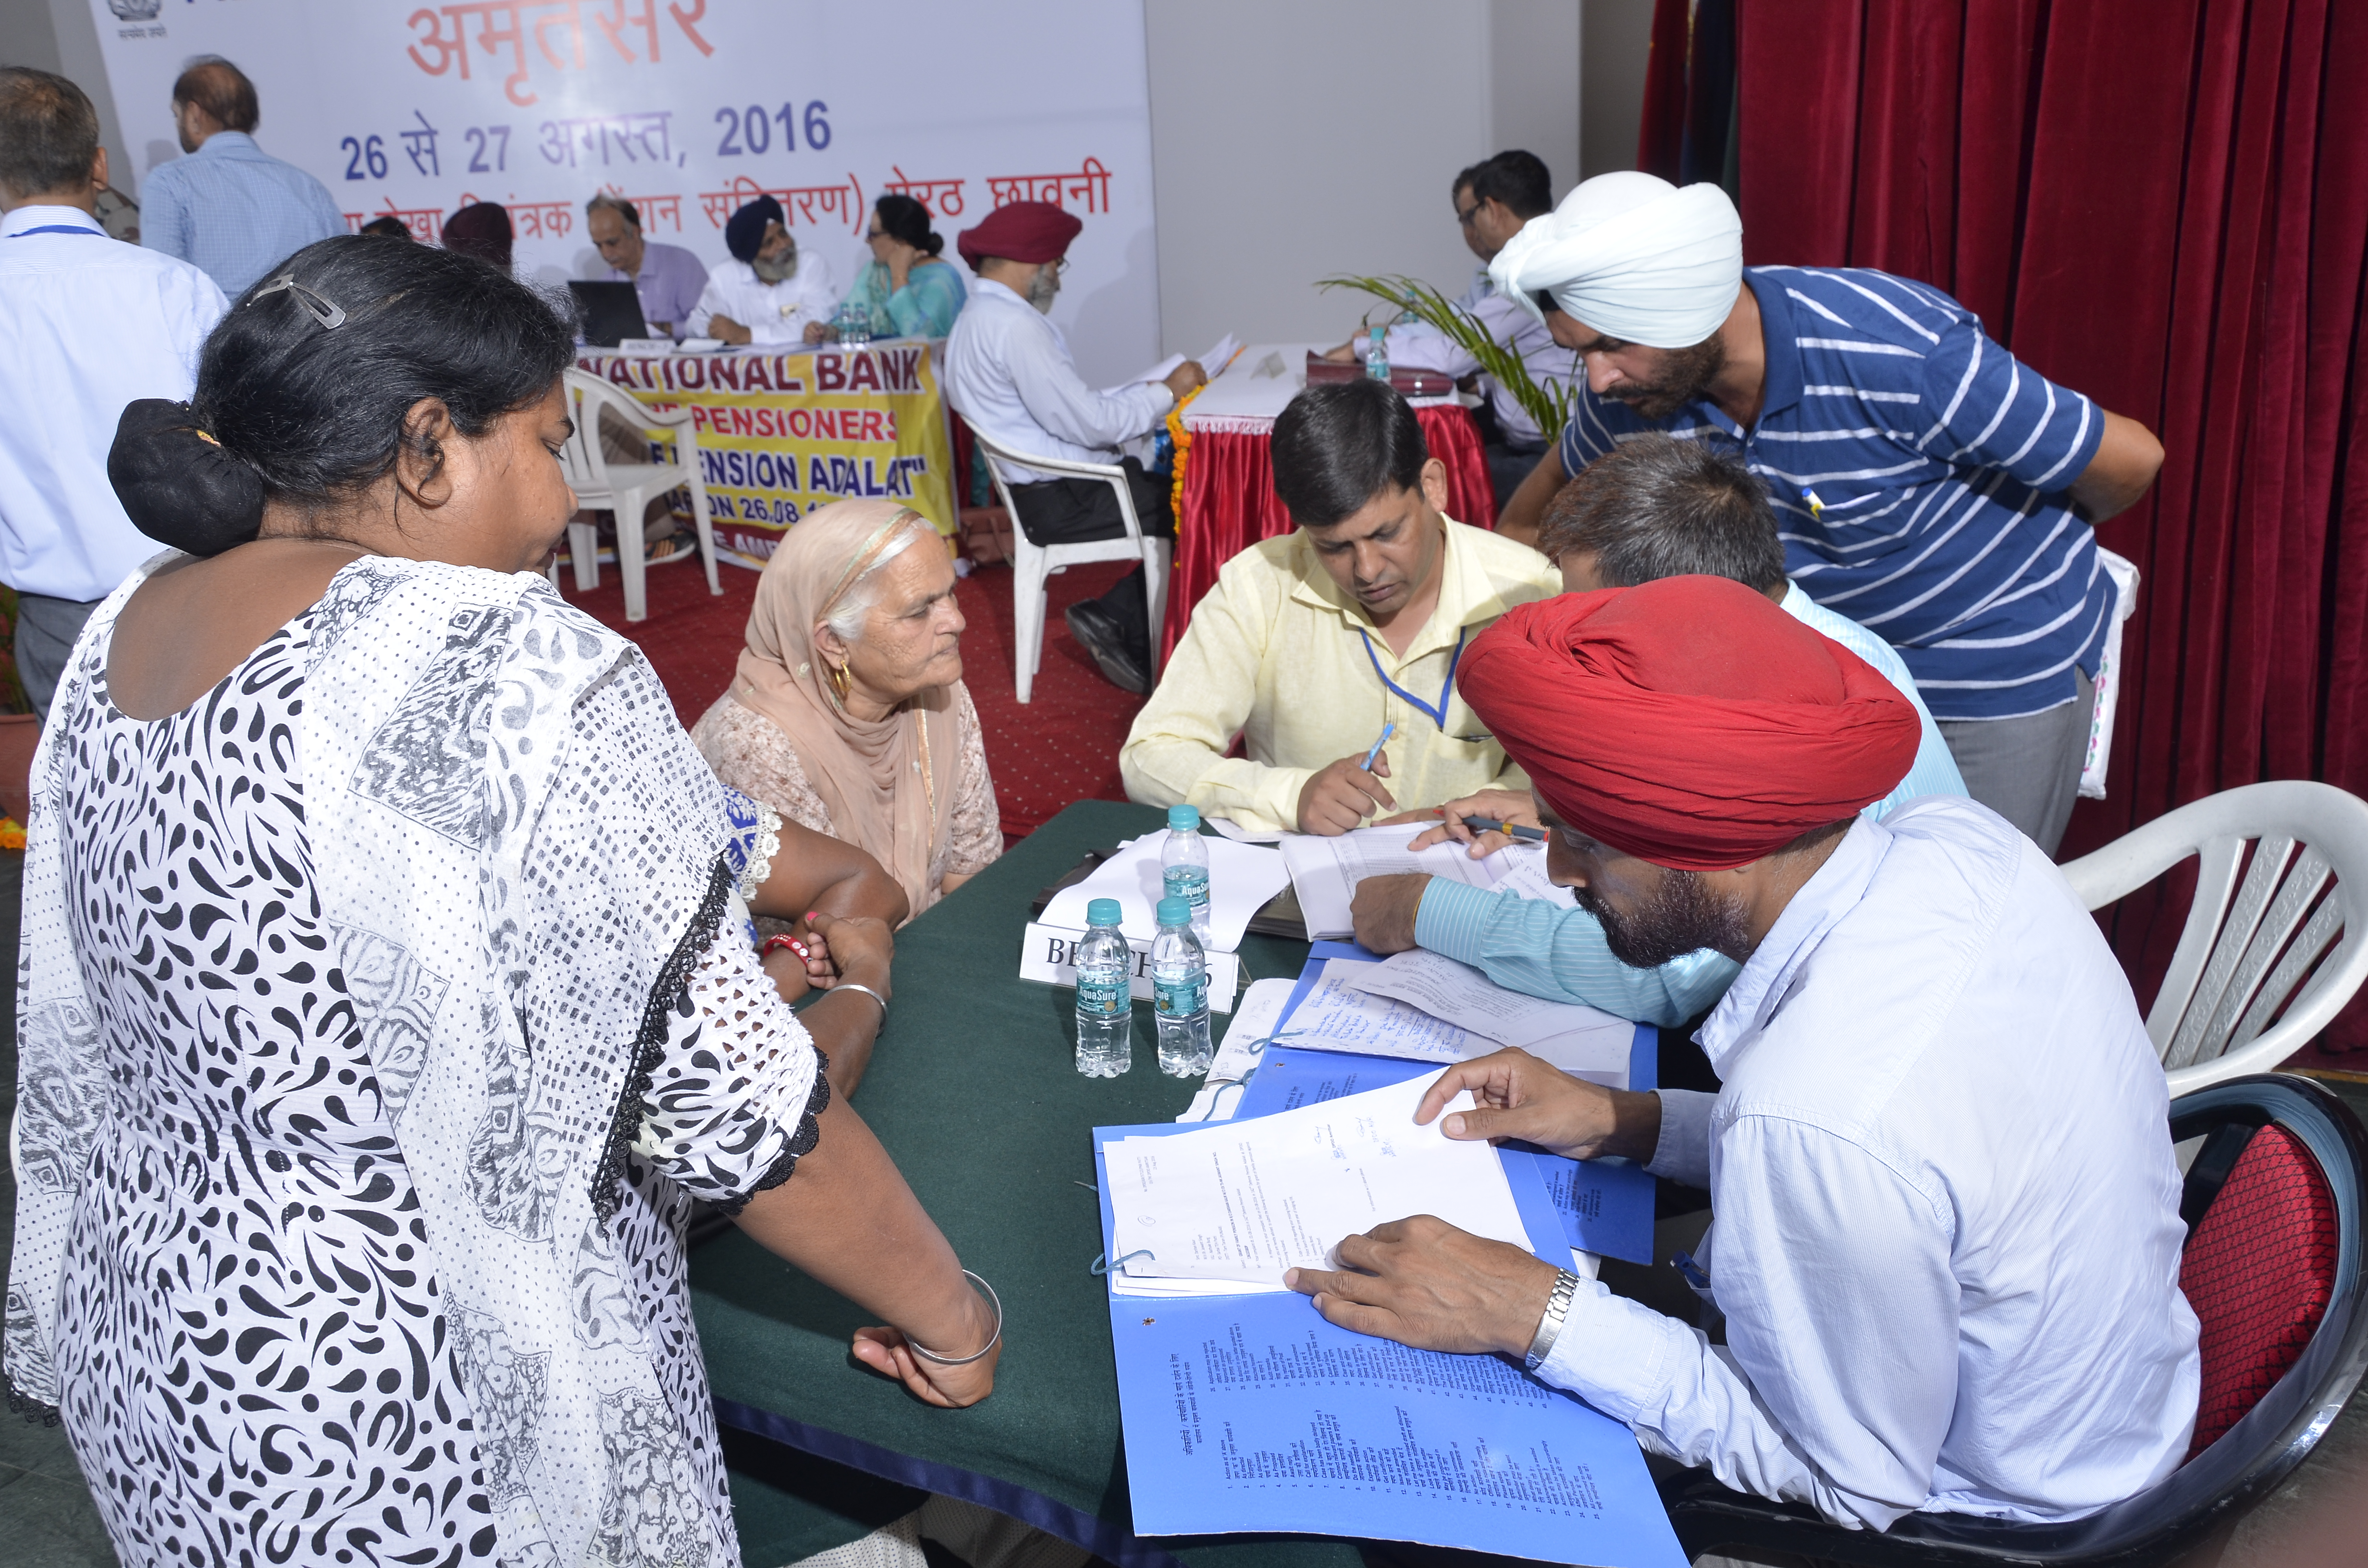 Checking and verifying service documents of ESM/Family Pensioners for redressing pension grievances